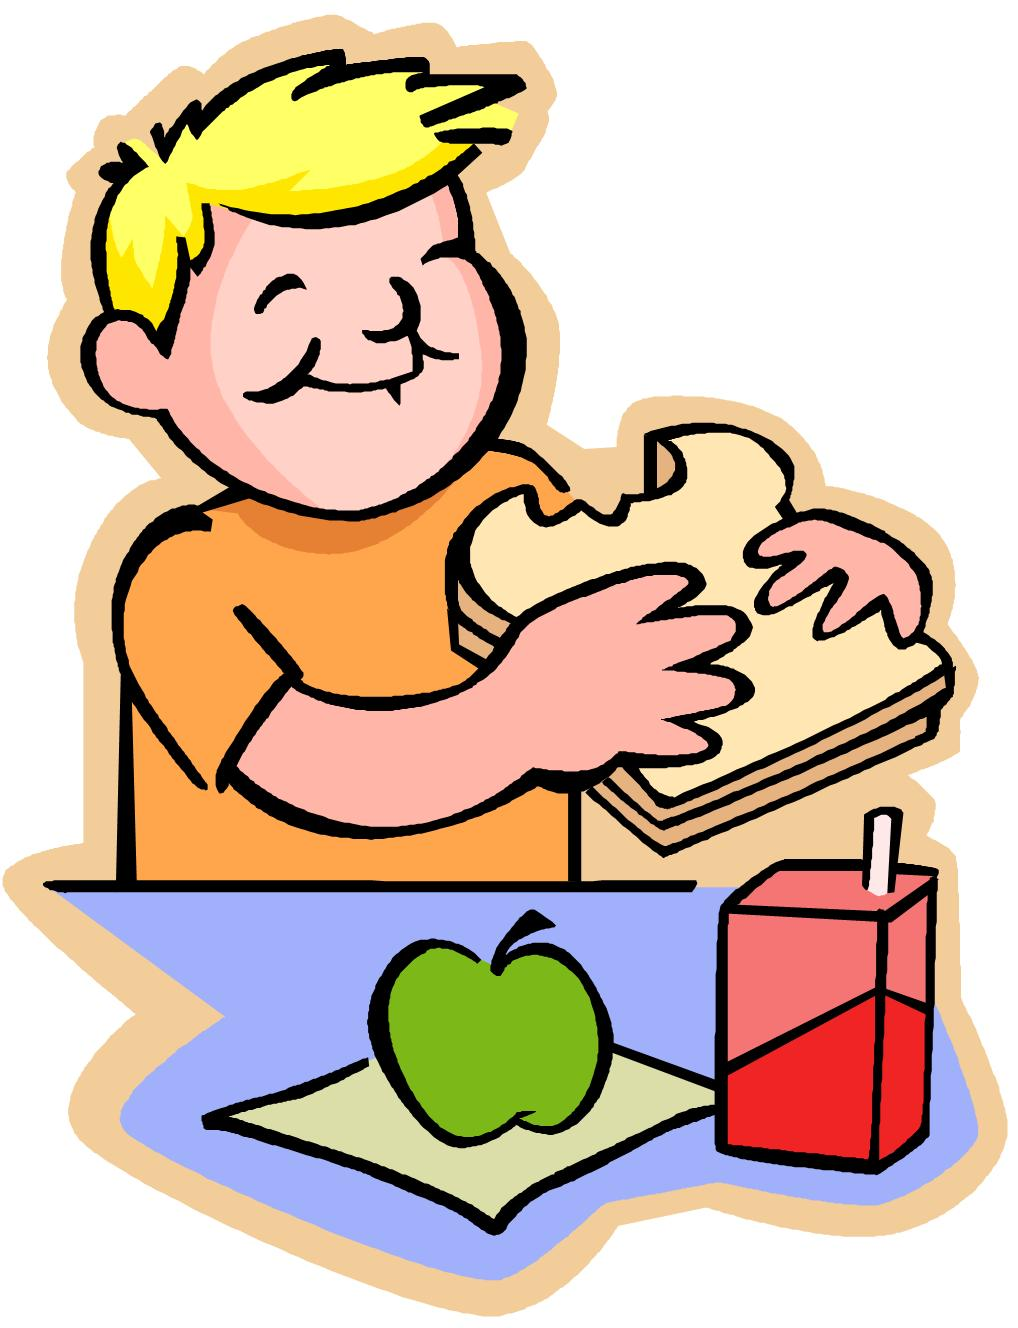 Free Eat Cliparts, Download Free Clip Art, Free Clip Art on.